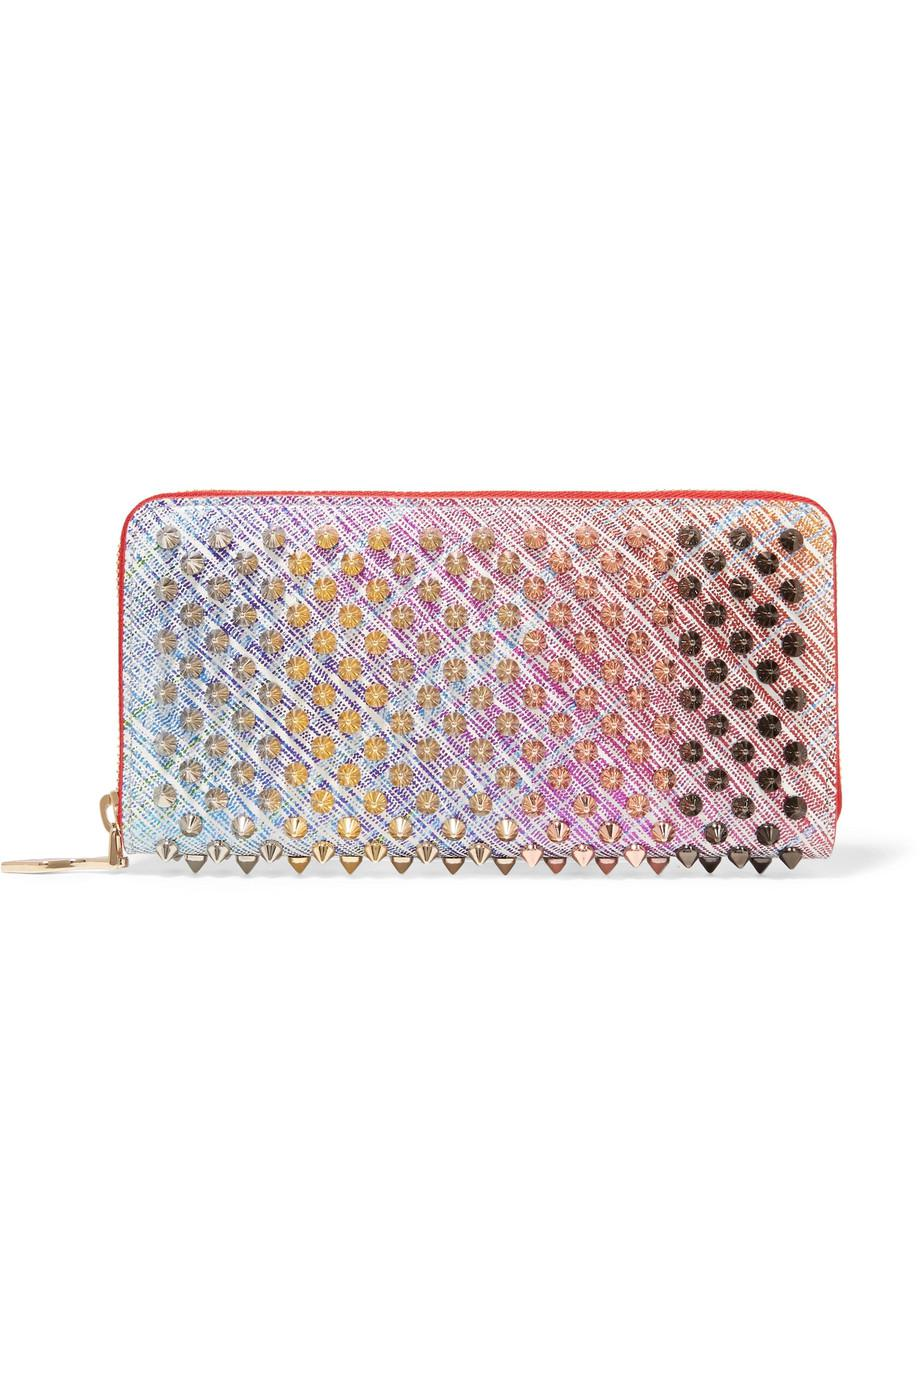 Panettone Spiked Metallic Suede Continental Wallet - Pink Christian Louboutin 02oYhDDoGf